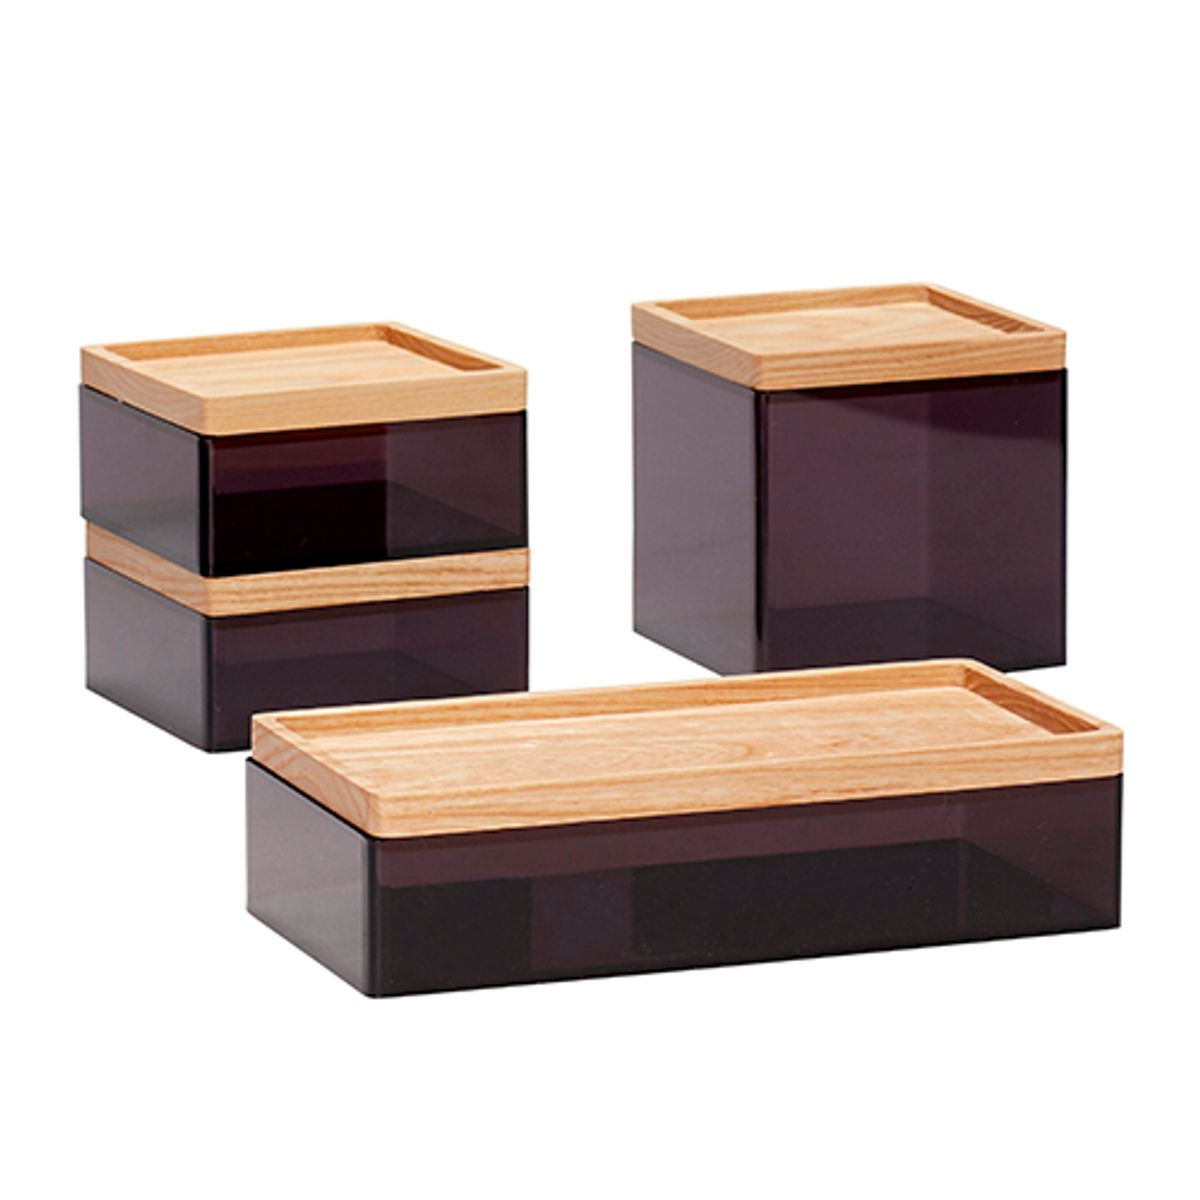 boite en acrylique noir avec couvercle en bois par 4 h bsch decoclico. Black Bedroom Furniture Sets. Home Design Ideas